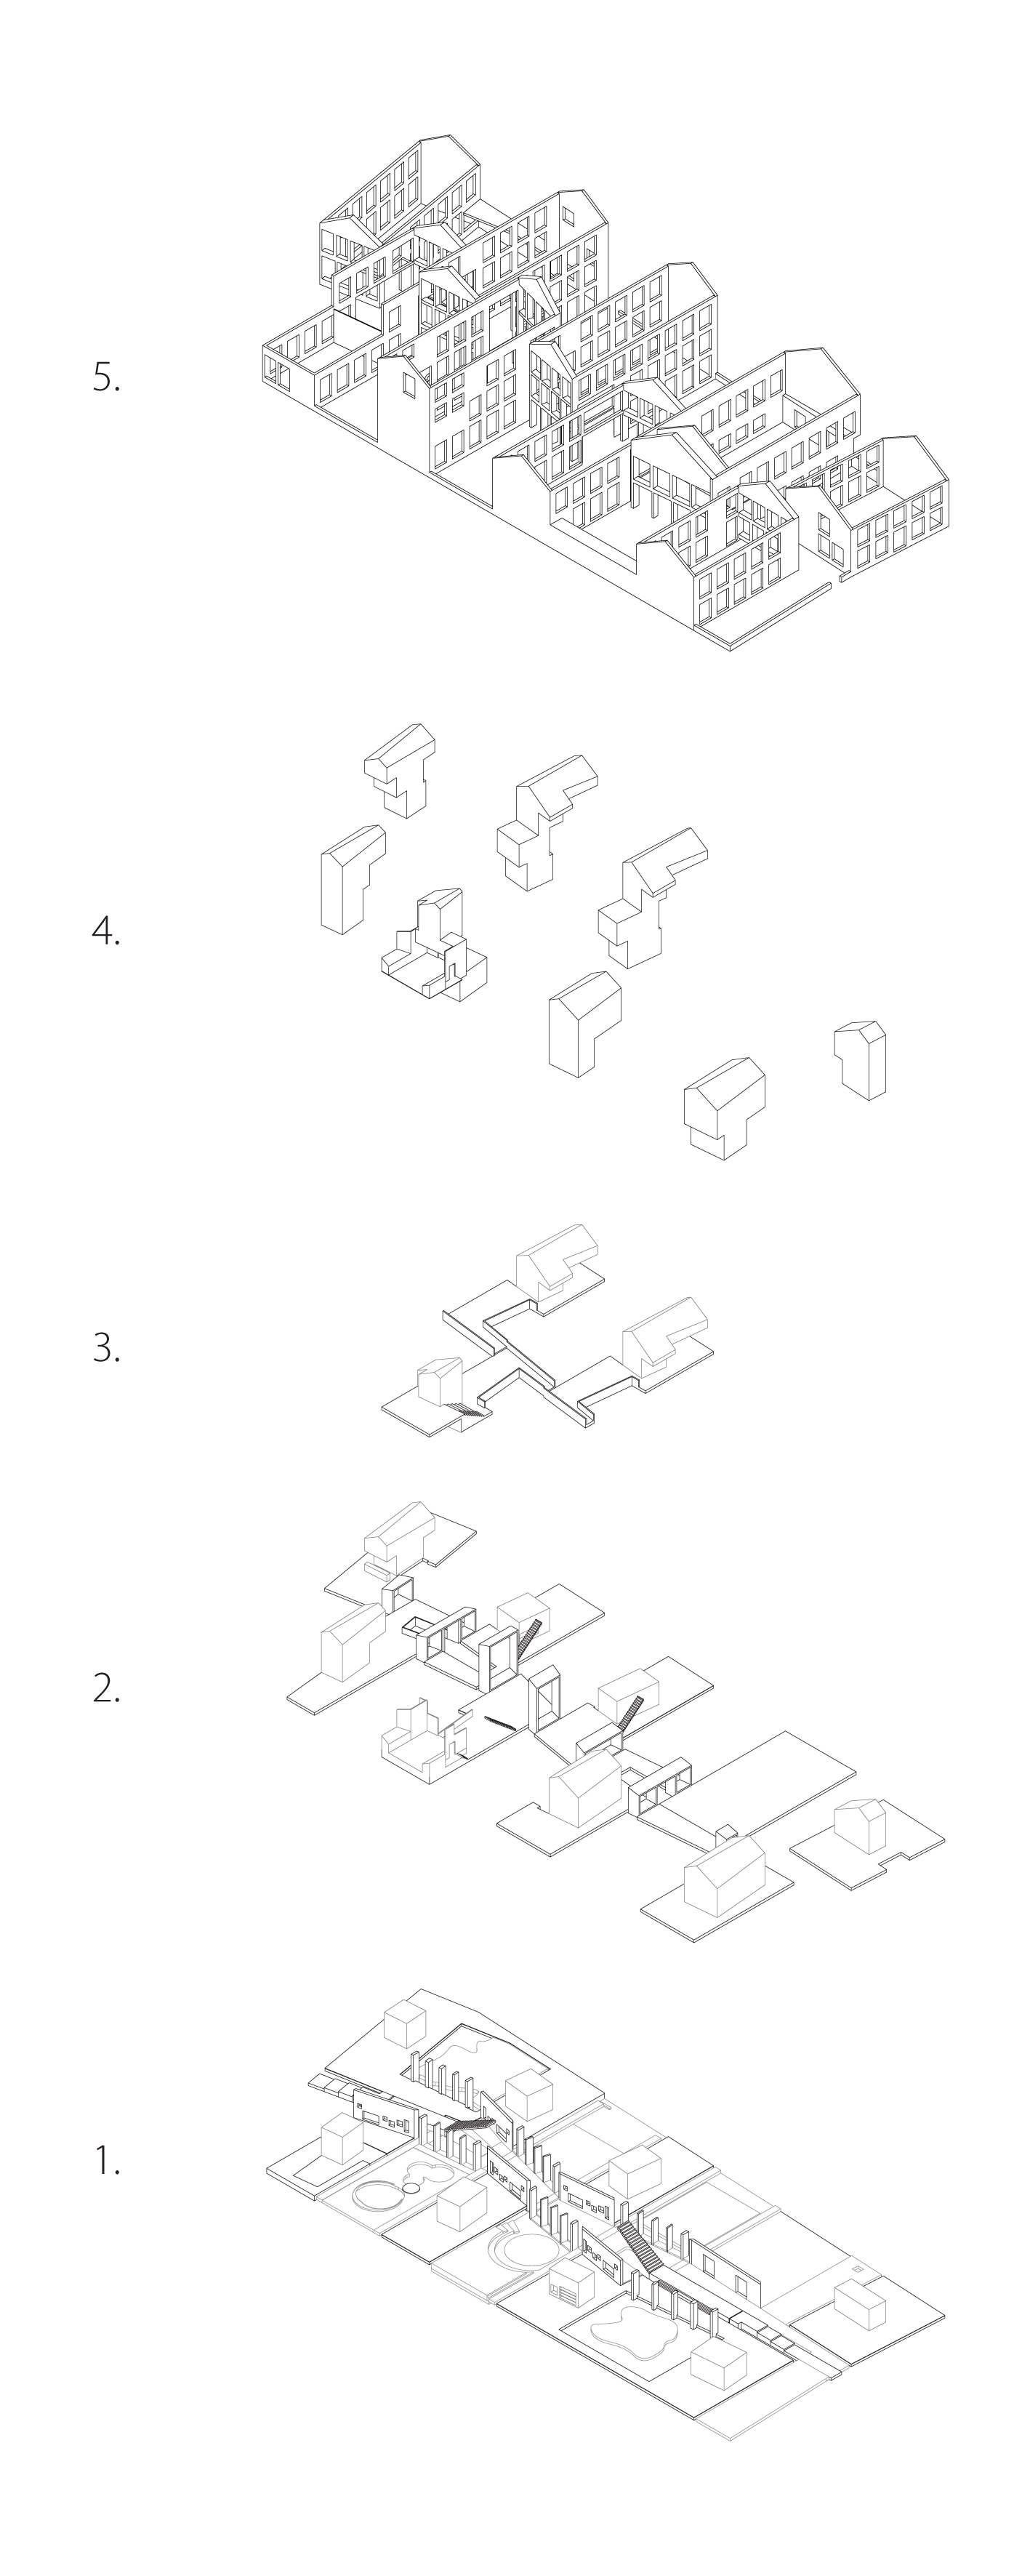 05_exploded view